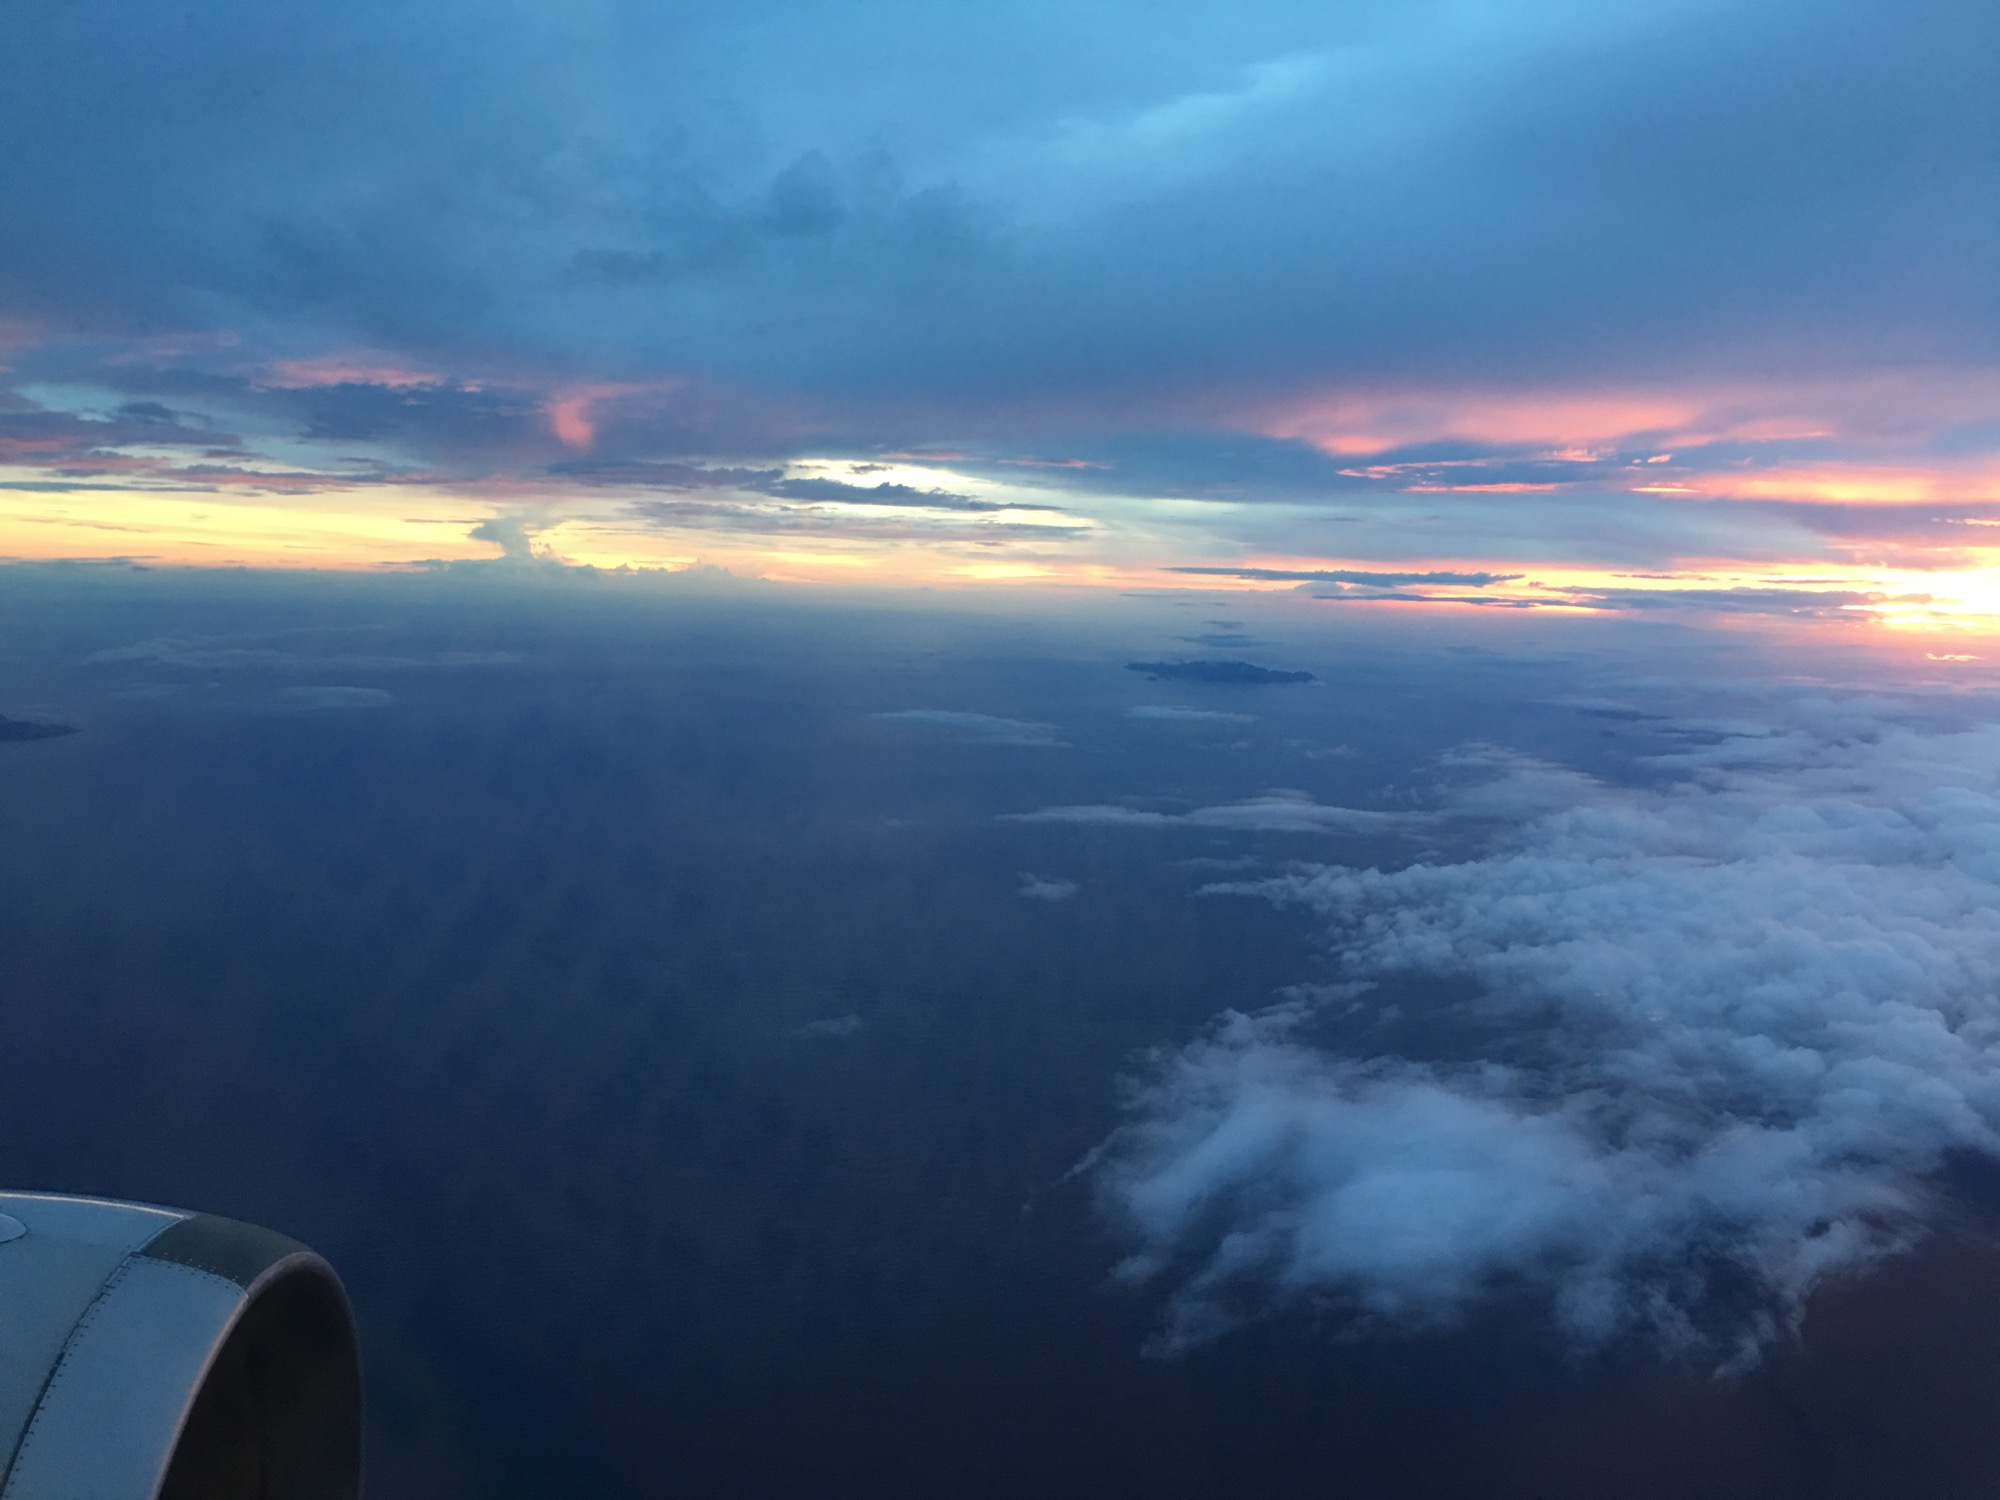 Sun setting over Hachijima on the flight back to the mainland